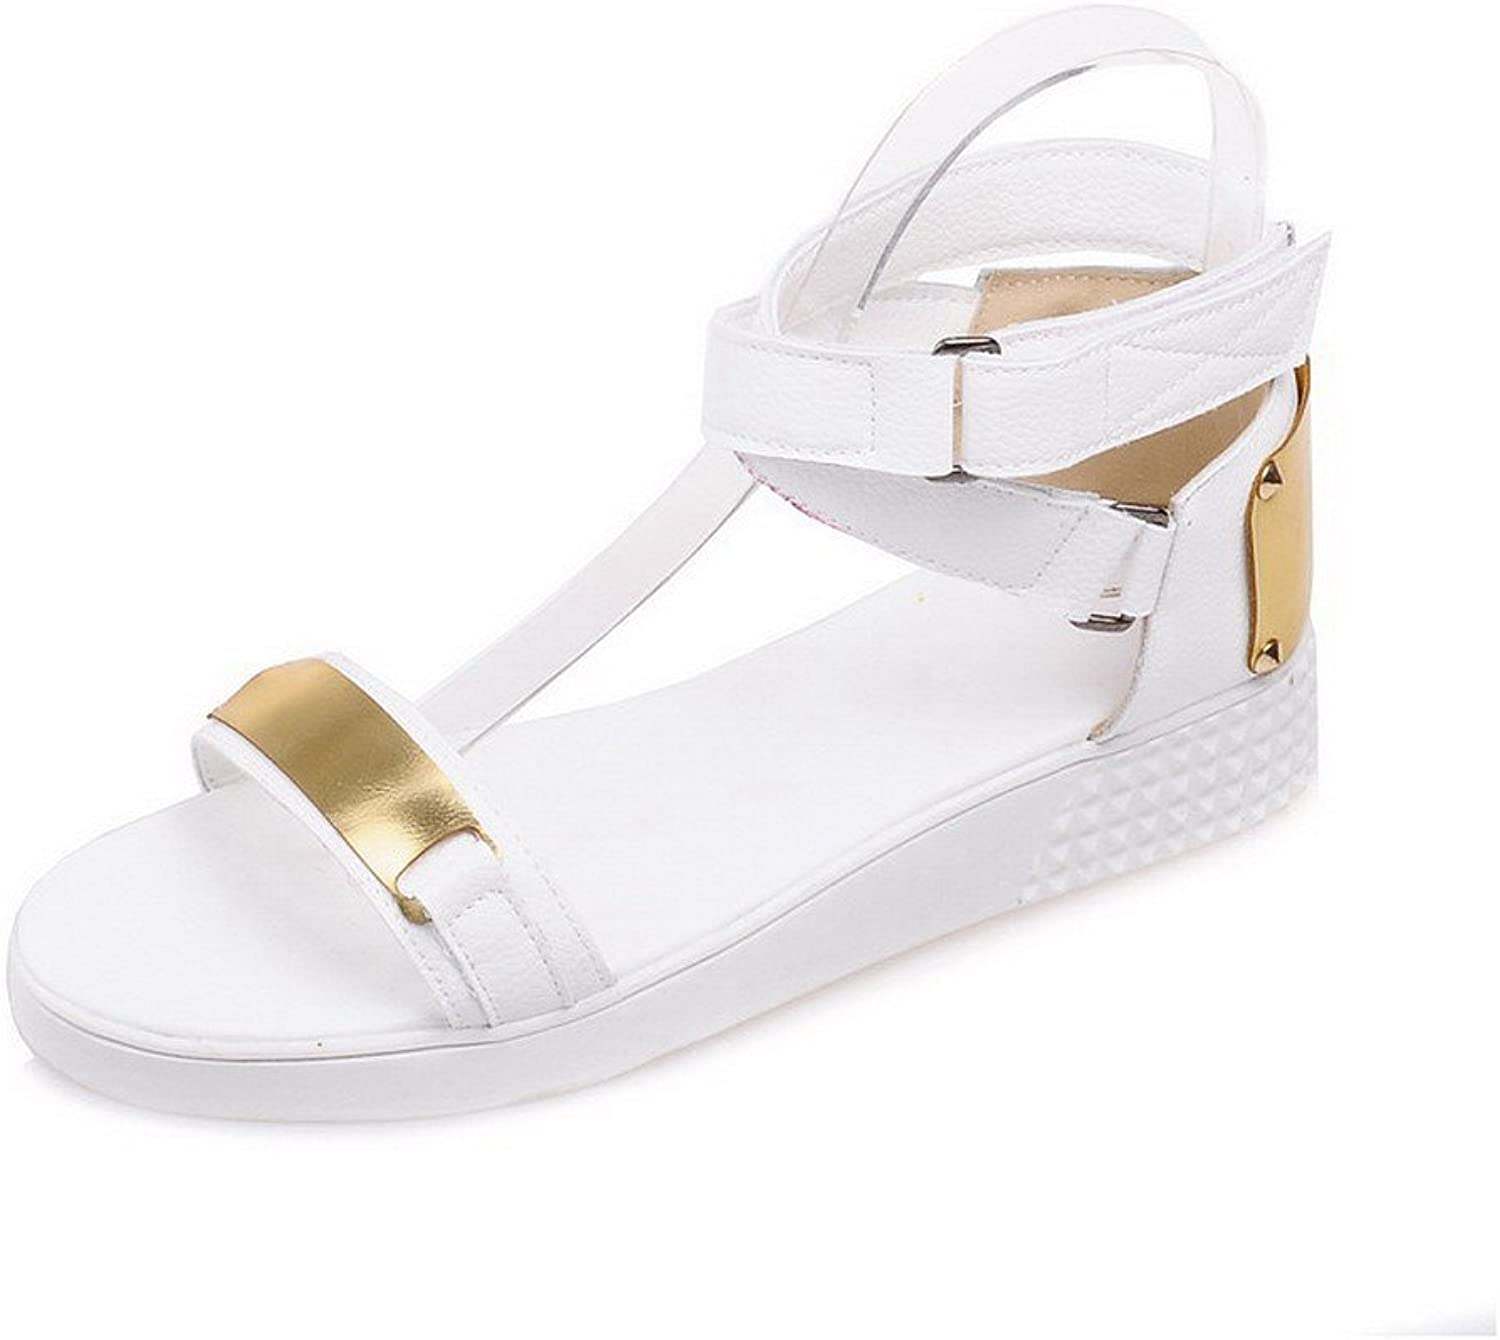 AmoonyFashion Women's Soft Material Hook-and-Loop Open Toe Low-Heels Solid Wedges-Sandals